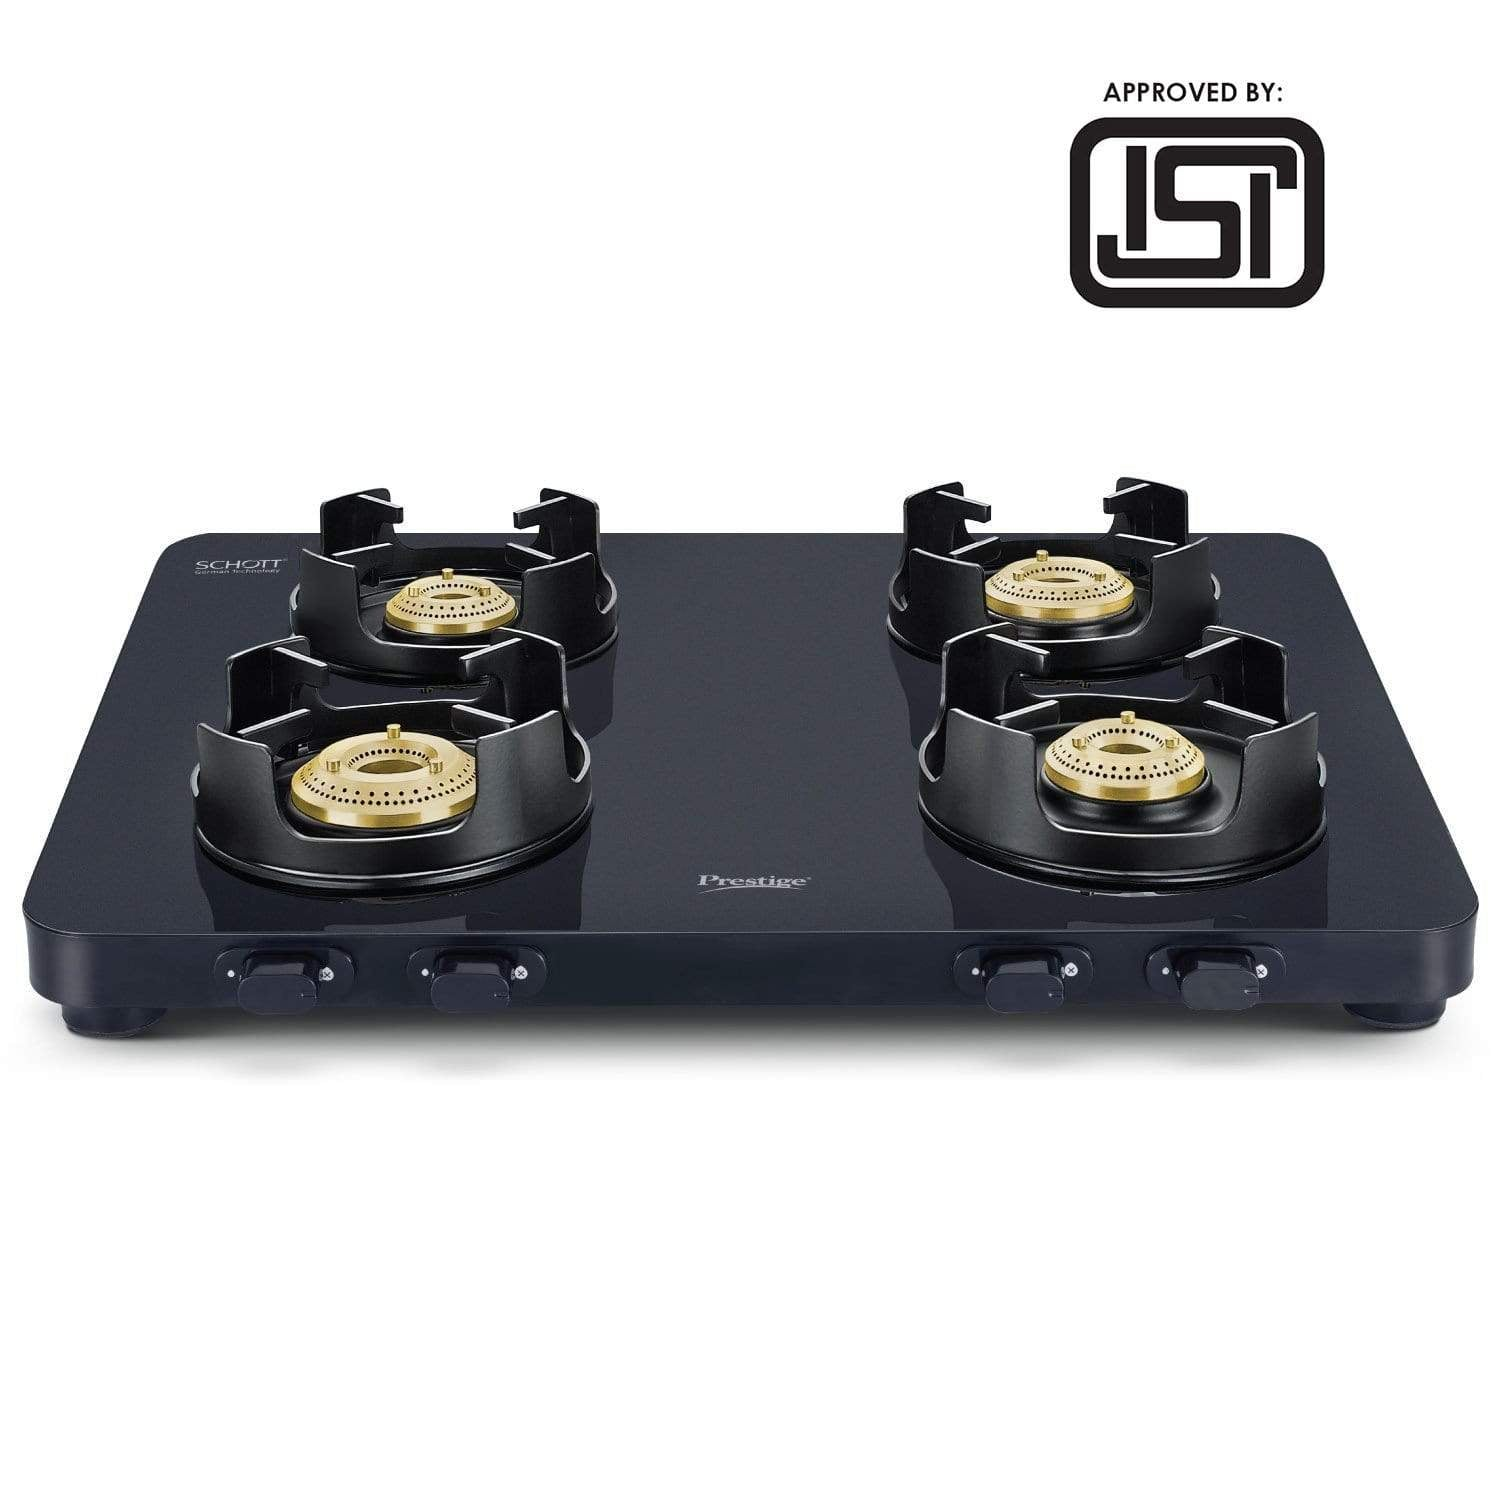 Prestige Edge 4 Burner Glass Gas Stove PEBS 04, Black(ISI Approved) with SCHOTT GLASS - KITCHEN MART